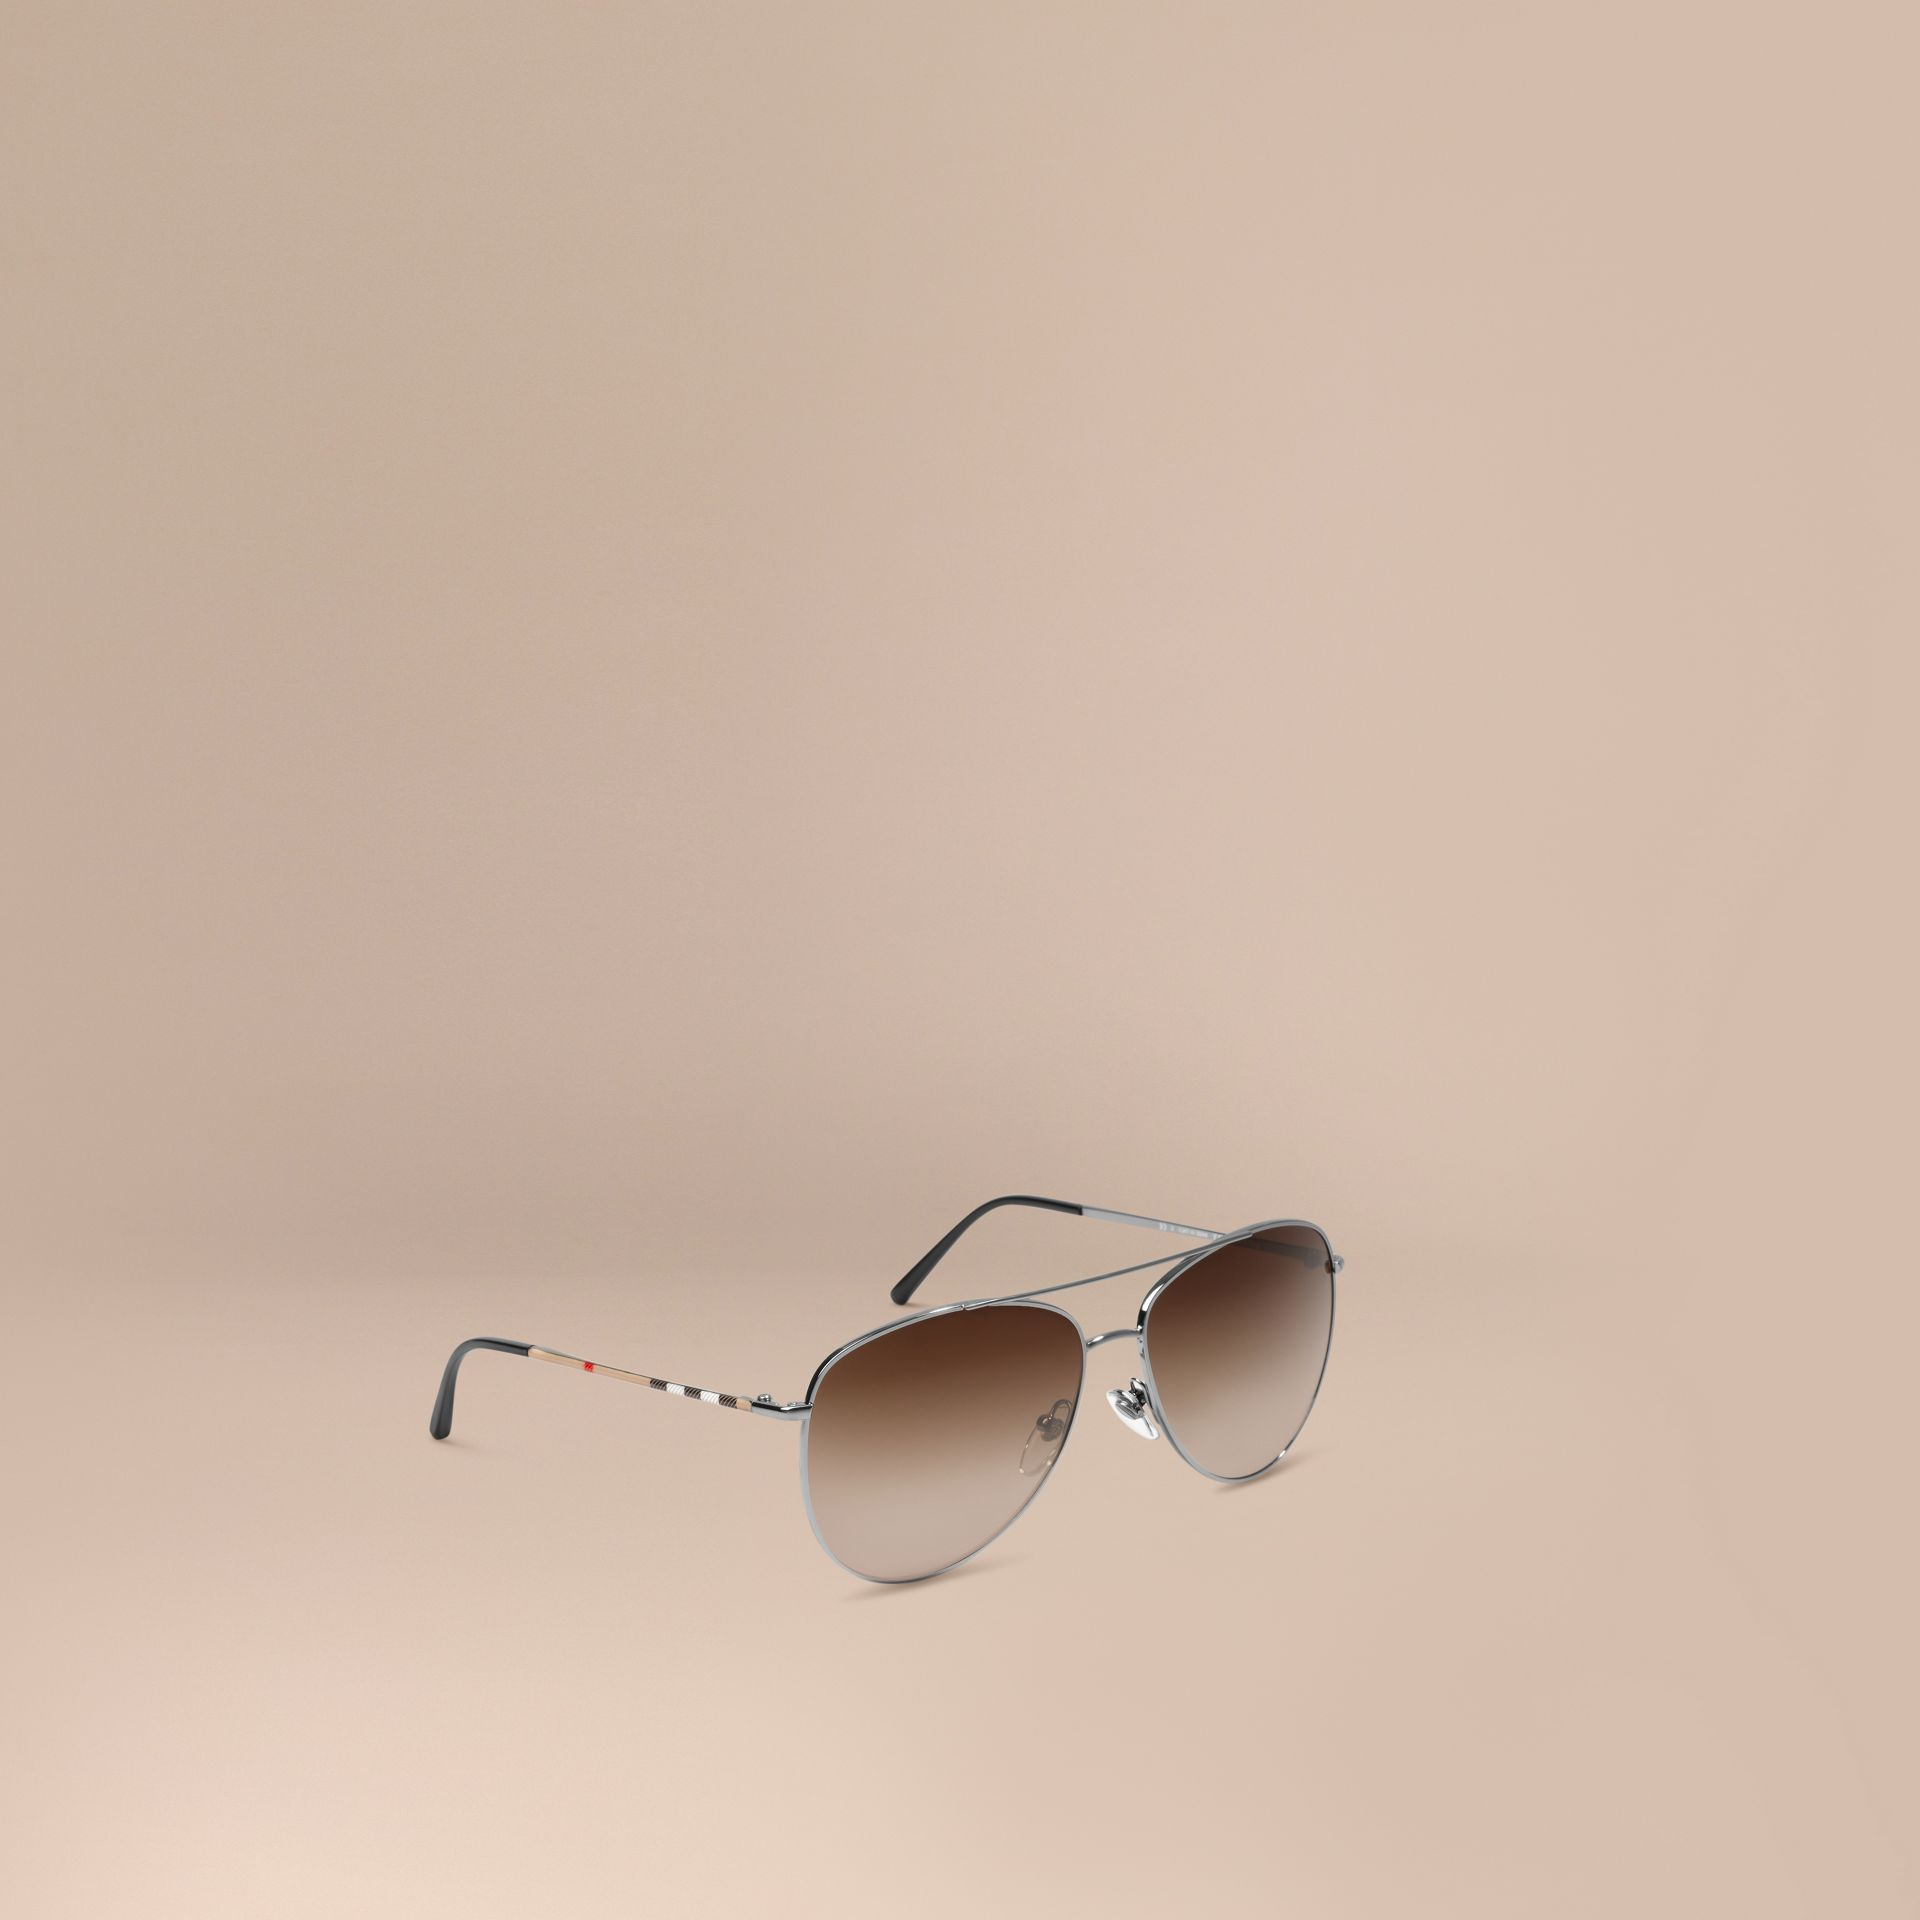 Nickel Lunettes de soleil Aviator avec branches en check Nickel - photo de la galerie 1